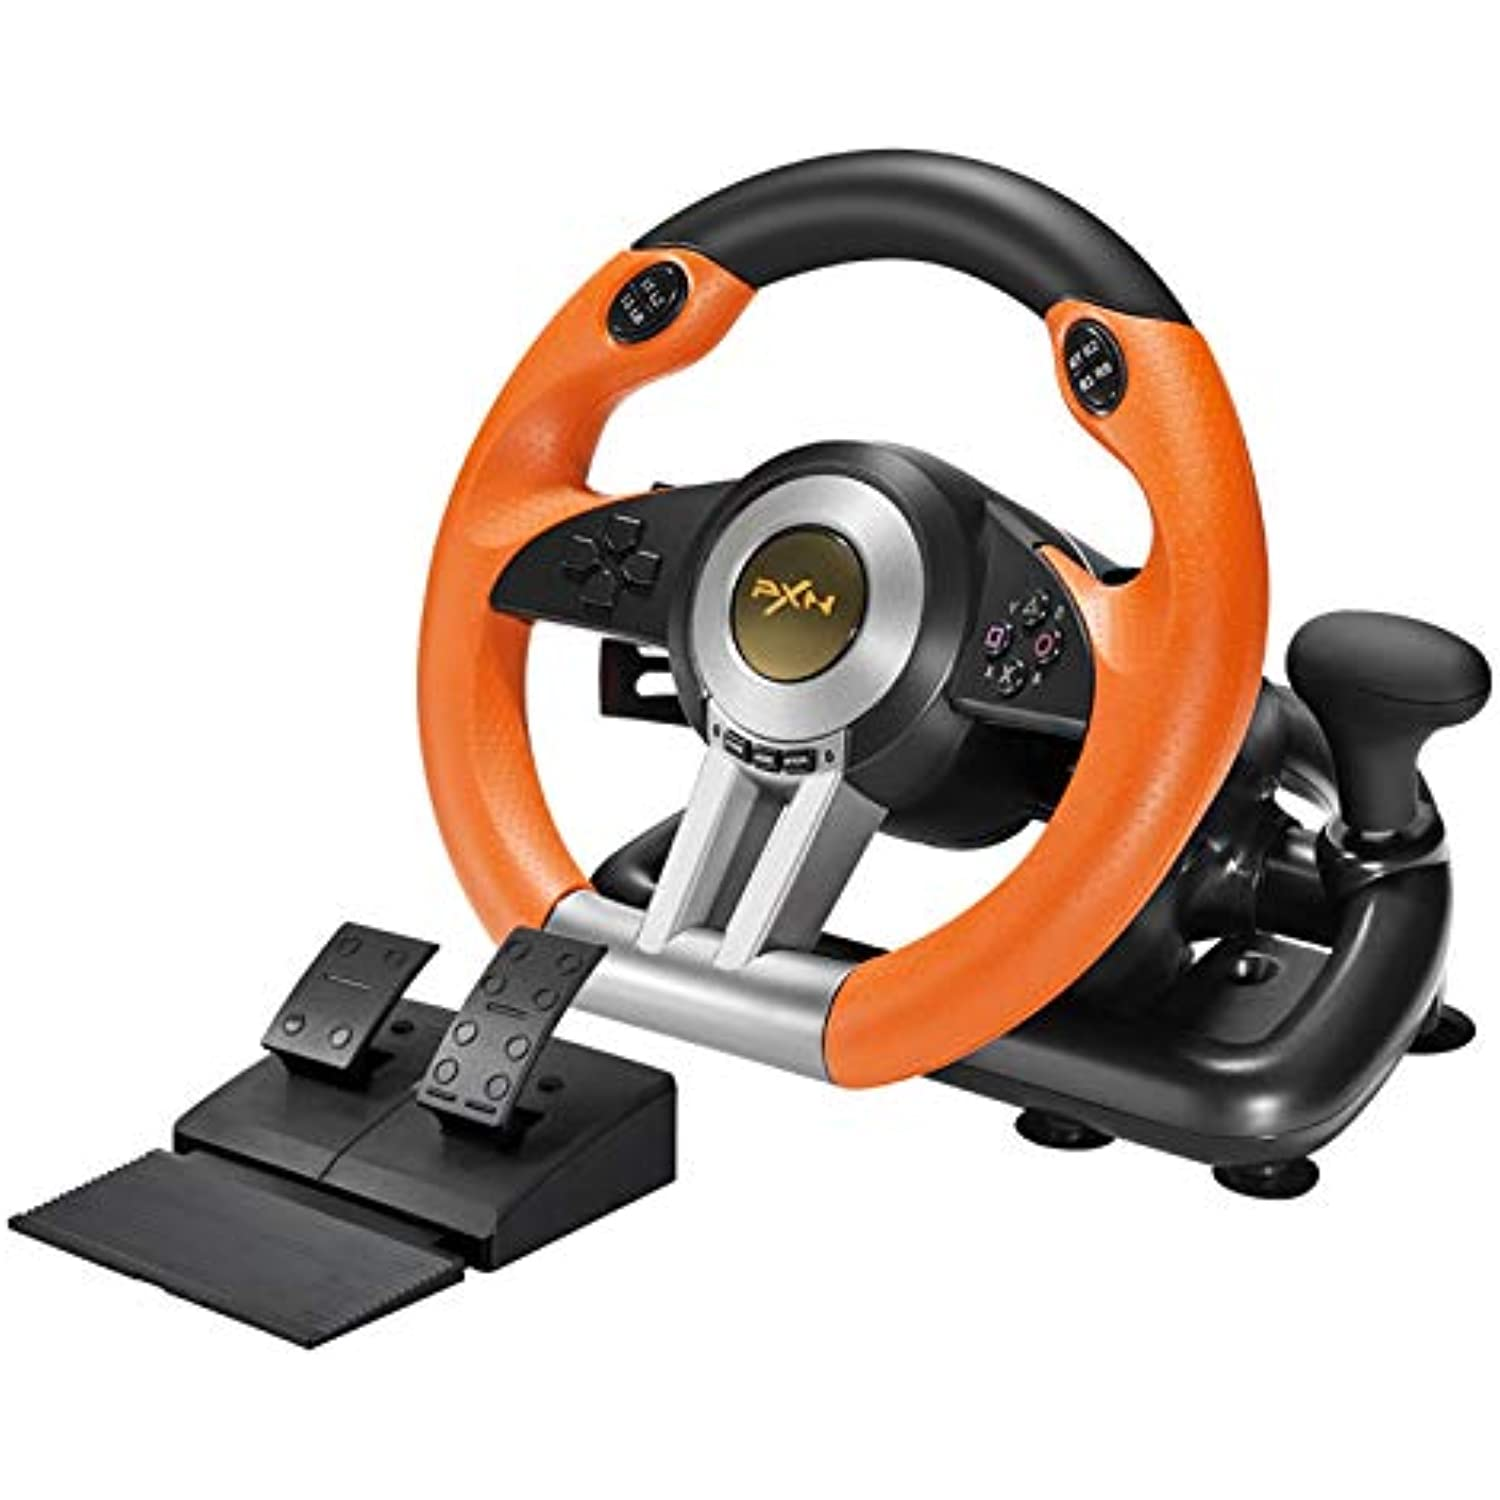 PXN V3II PC Racing Wheel, USB Car Race Game Steering Wheel with Pedals for Windows PC/PS3/PS4/Xbox One/Nintendo Switch